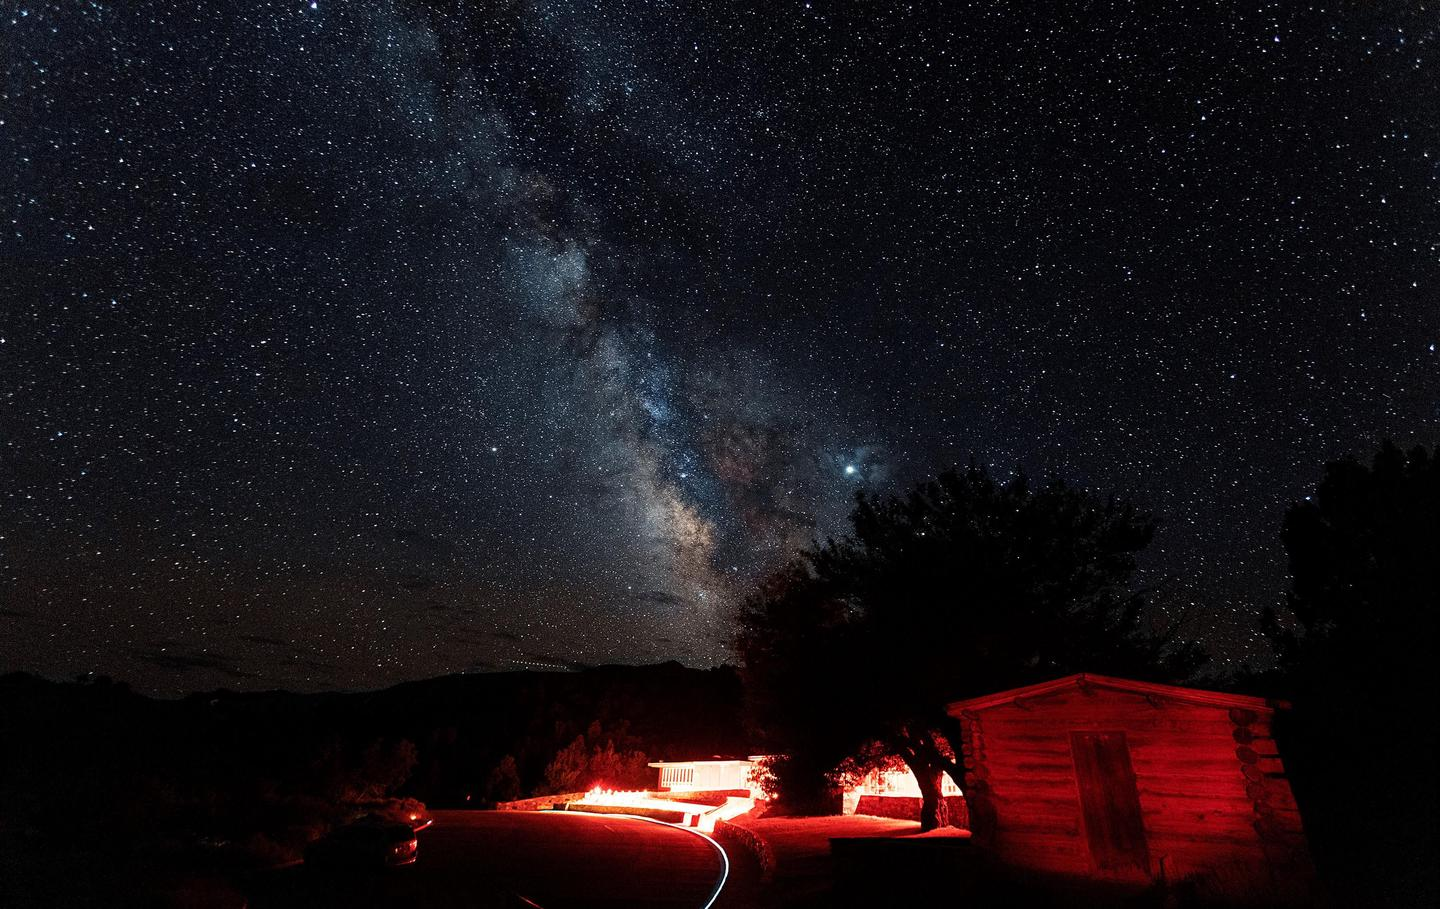 Milky Way at Great Basin National ParkCome see the Milky Way at Great Basin National Park. Remember to check the moon phase.